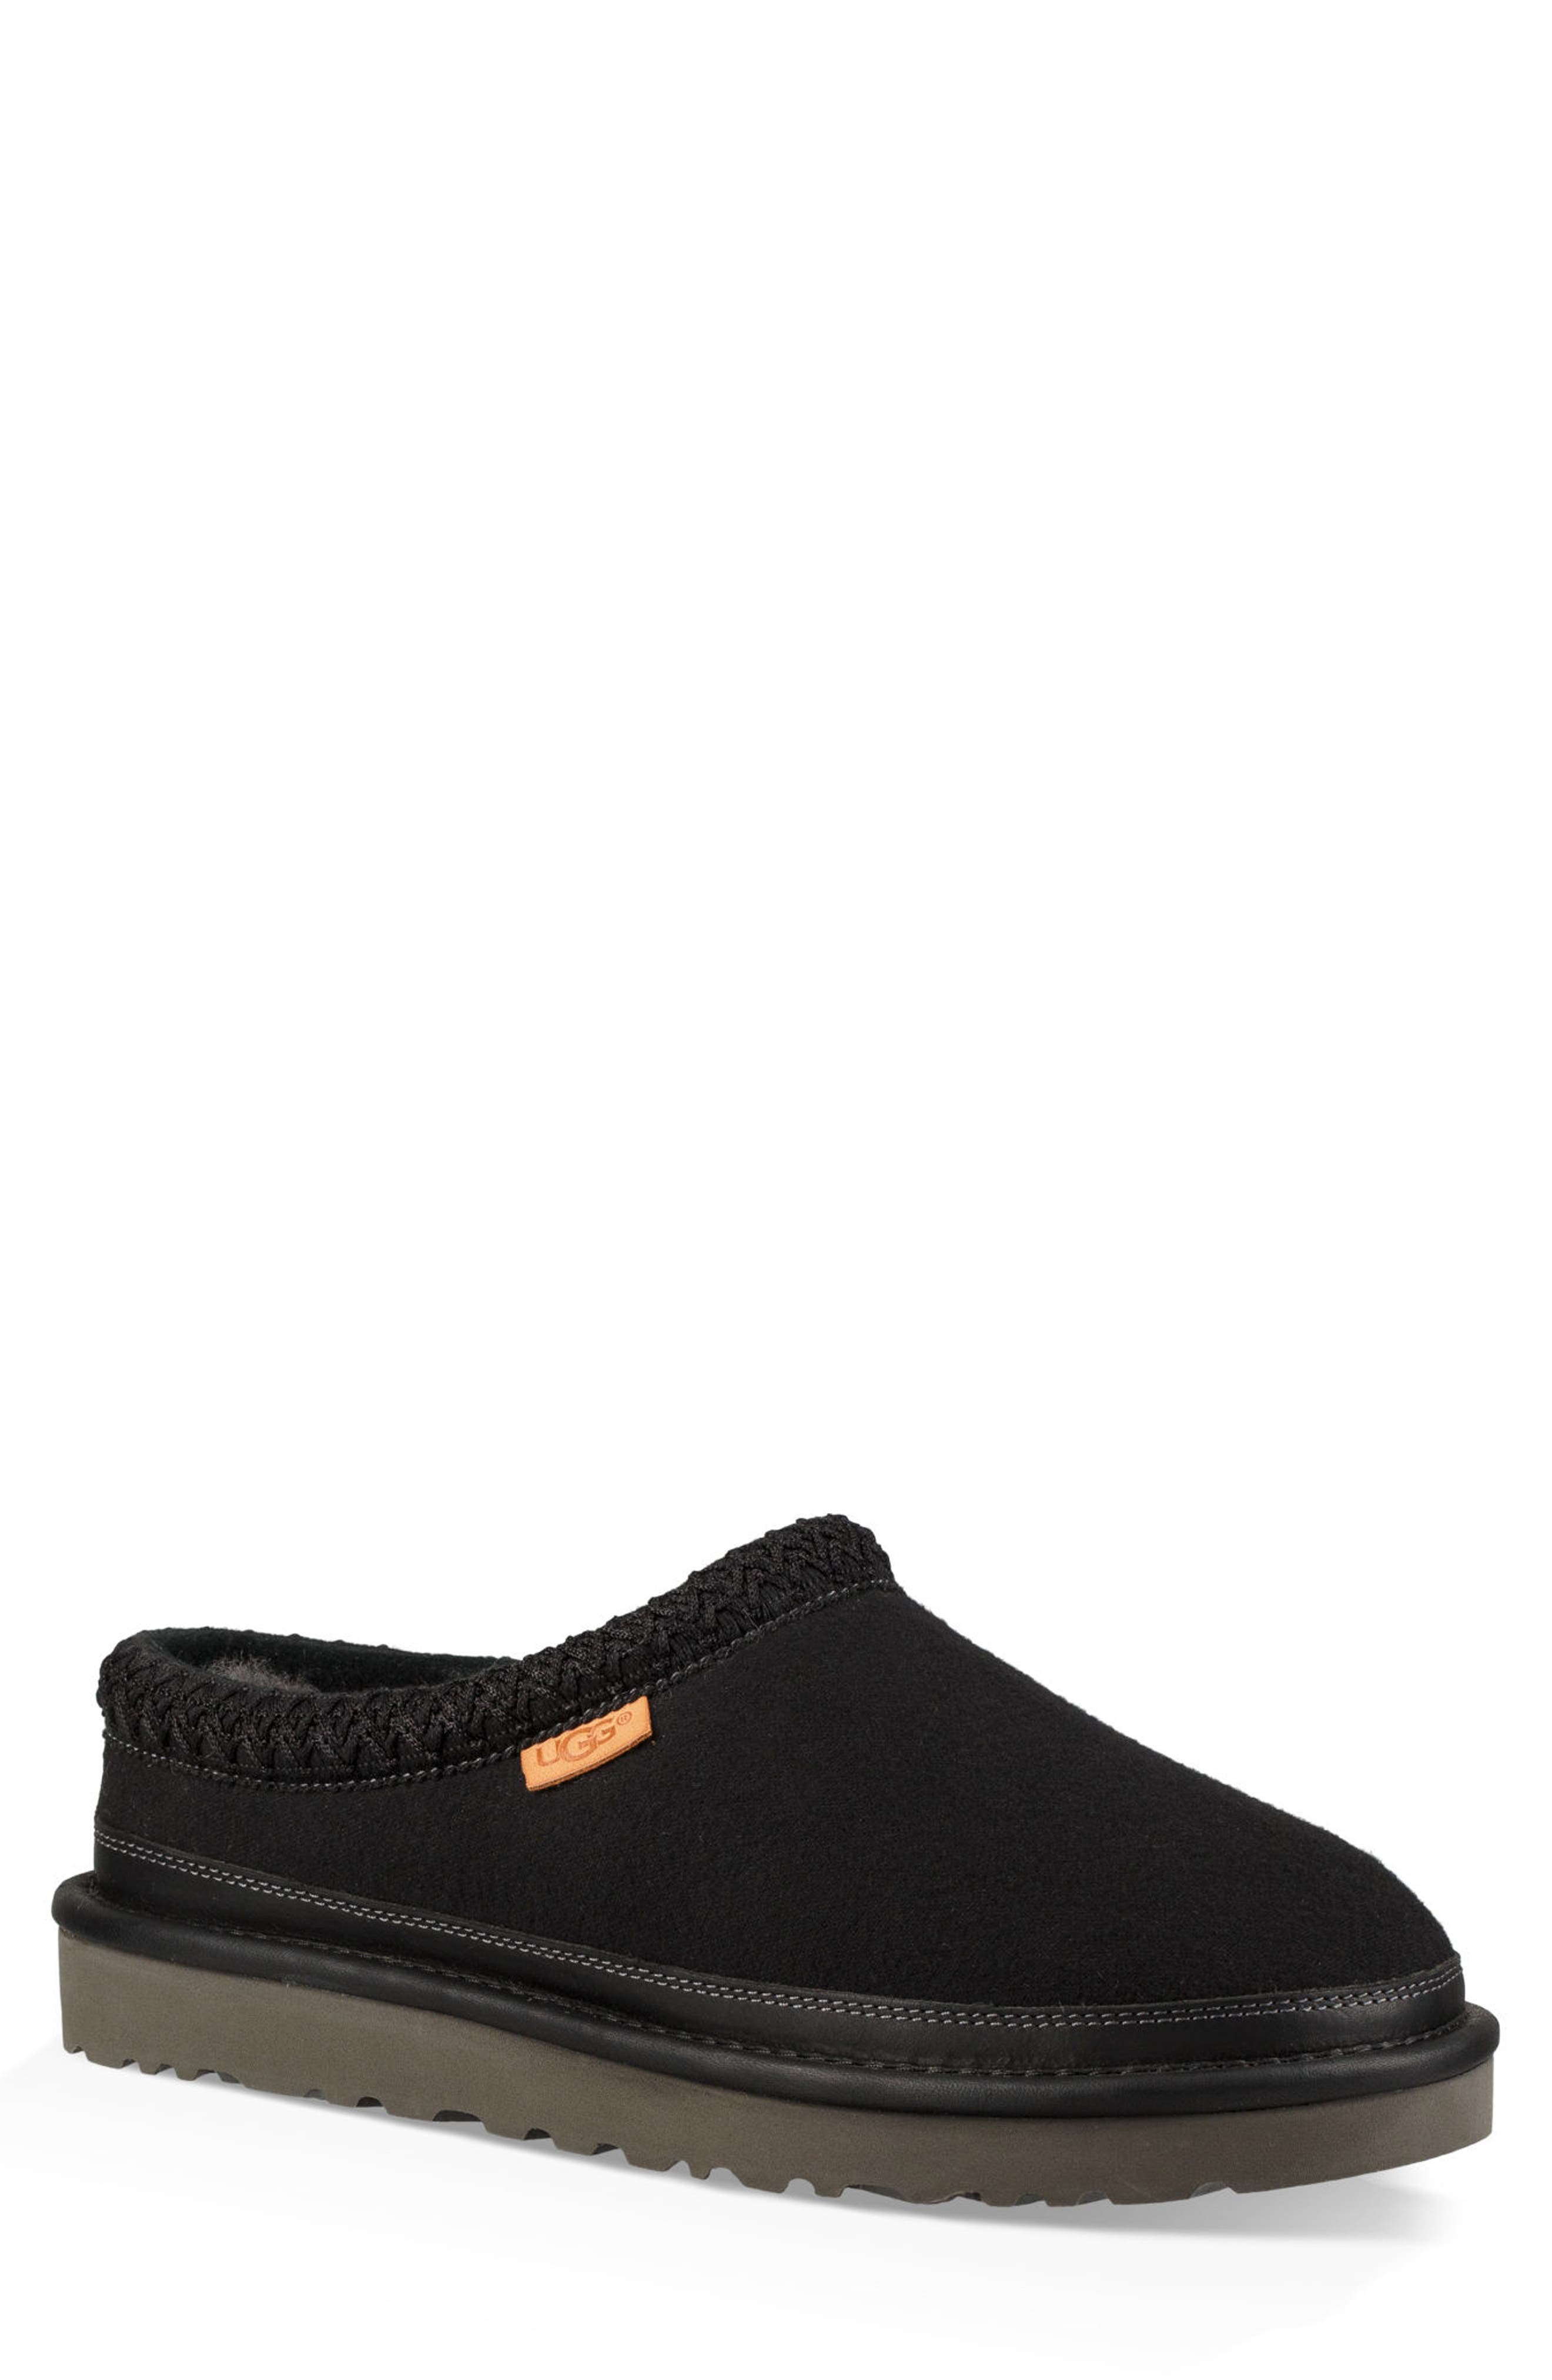 'Tasman' Slipper,                             Main thumbnail 1, color,                             BLACK/ BLACK